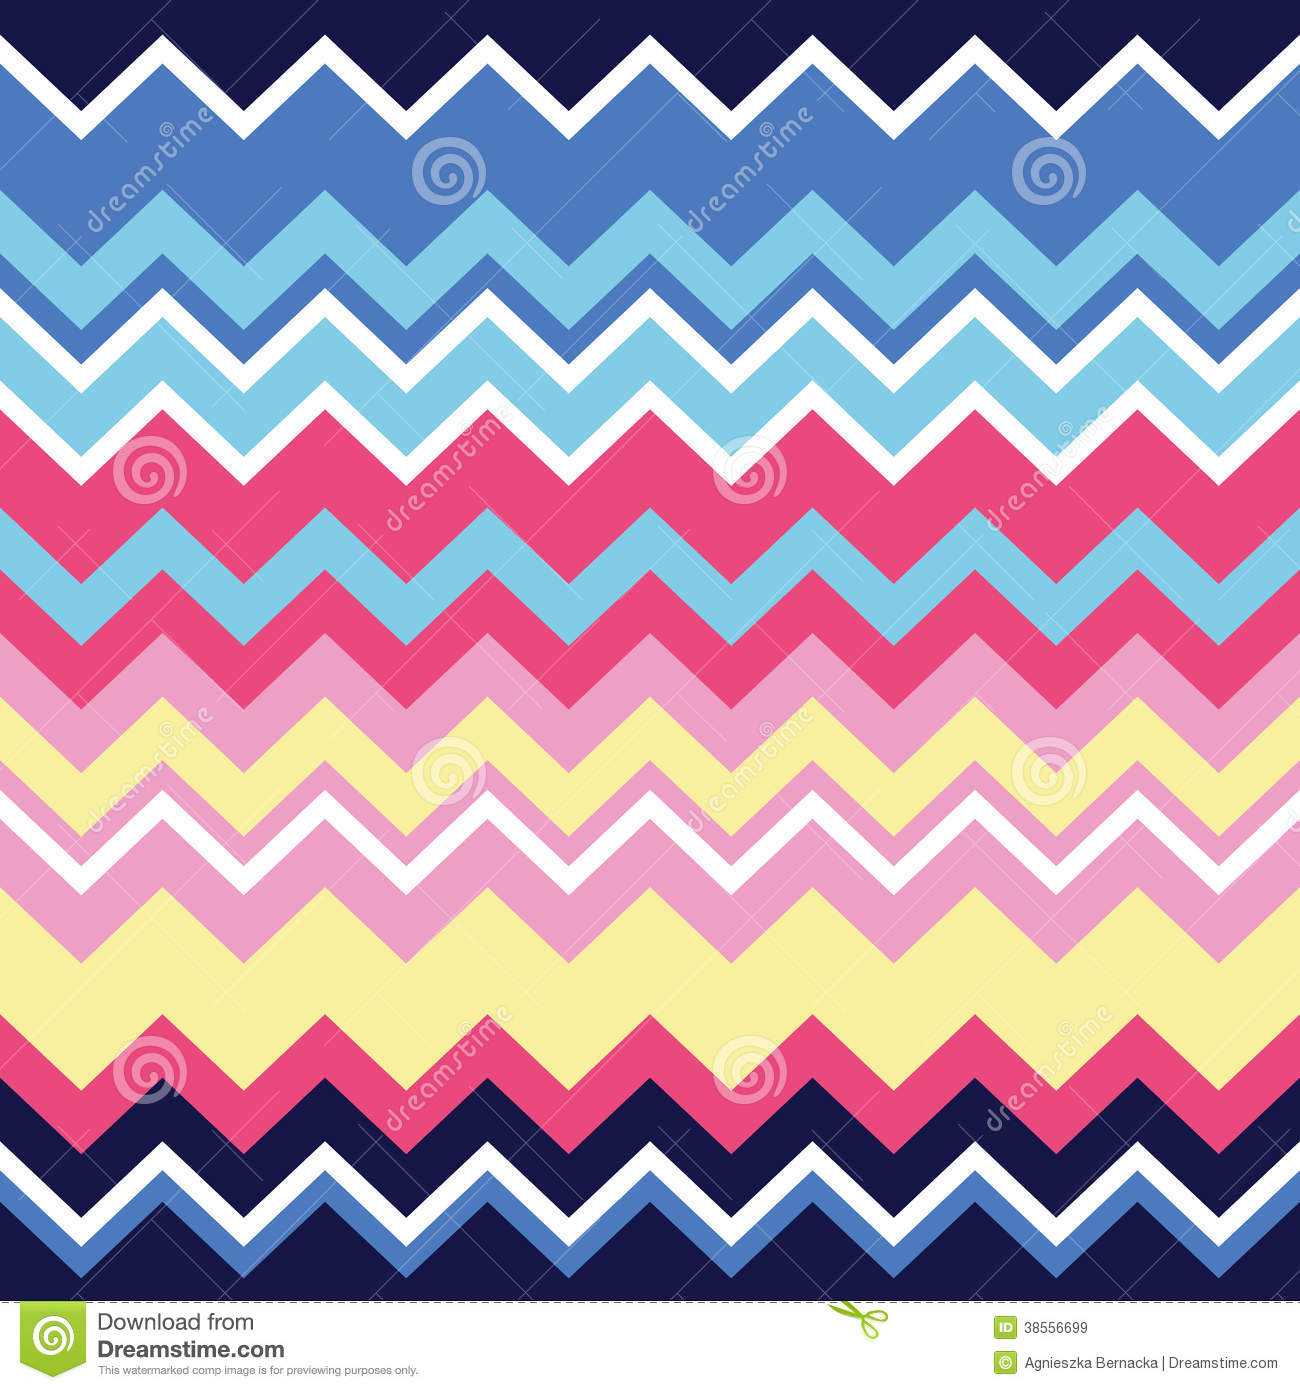 Background geometric mexican patterns seamless vector zigzag maya - Aztec Blue Ethnic Navy Ornament Pattern Pink Print Seamless Tribal Vector Yellow Zigzag Background